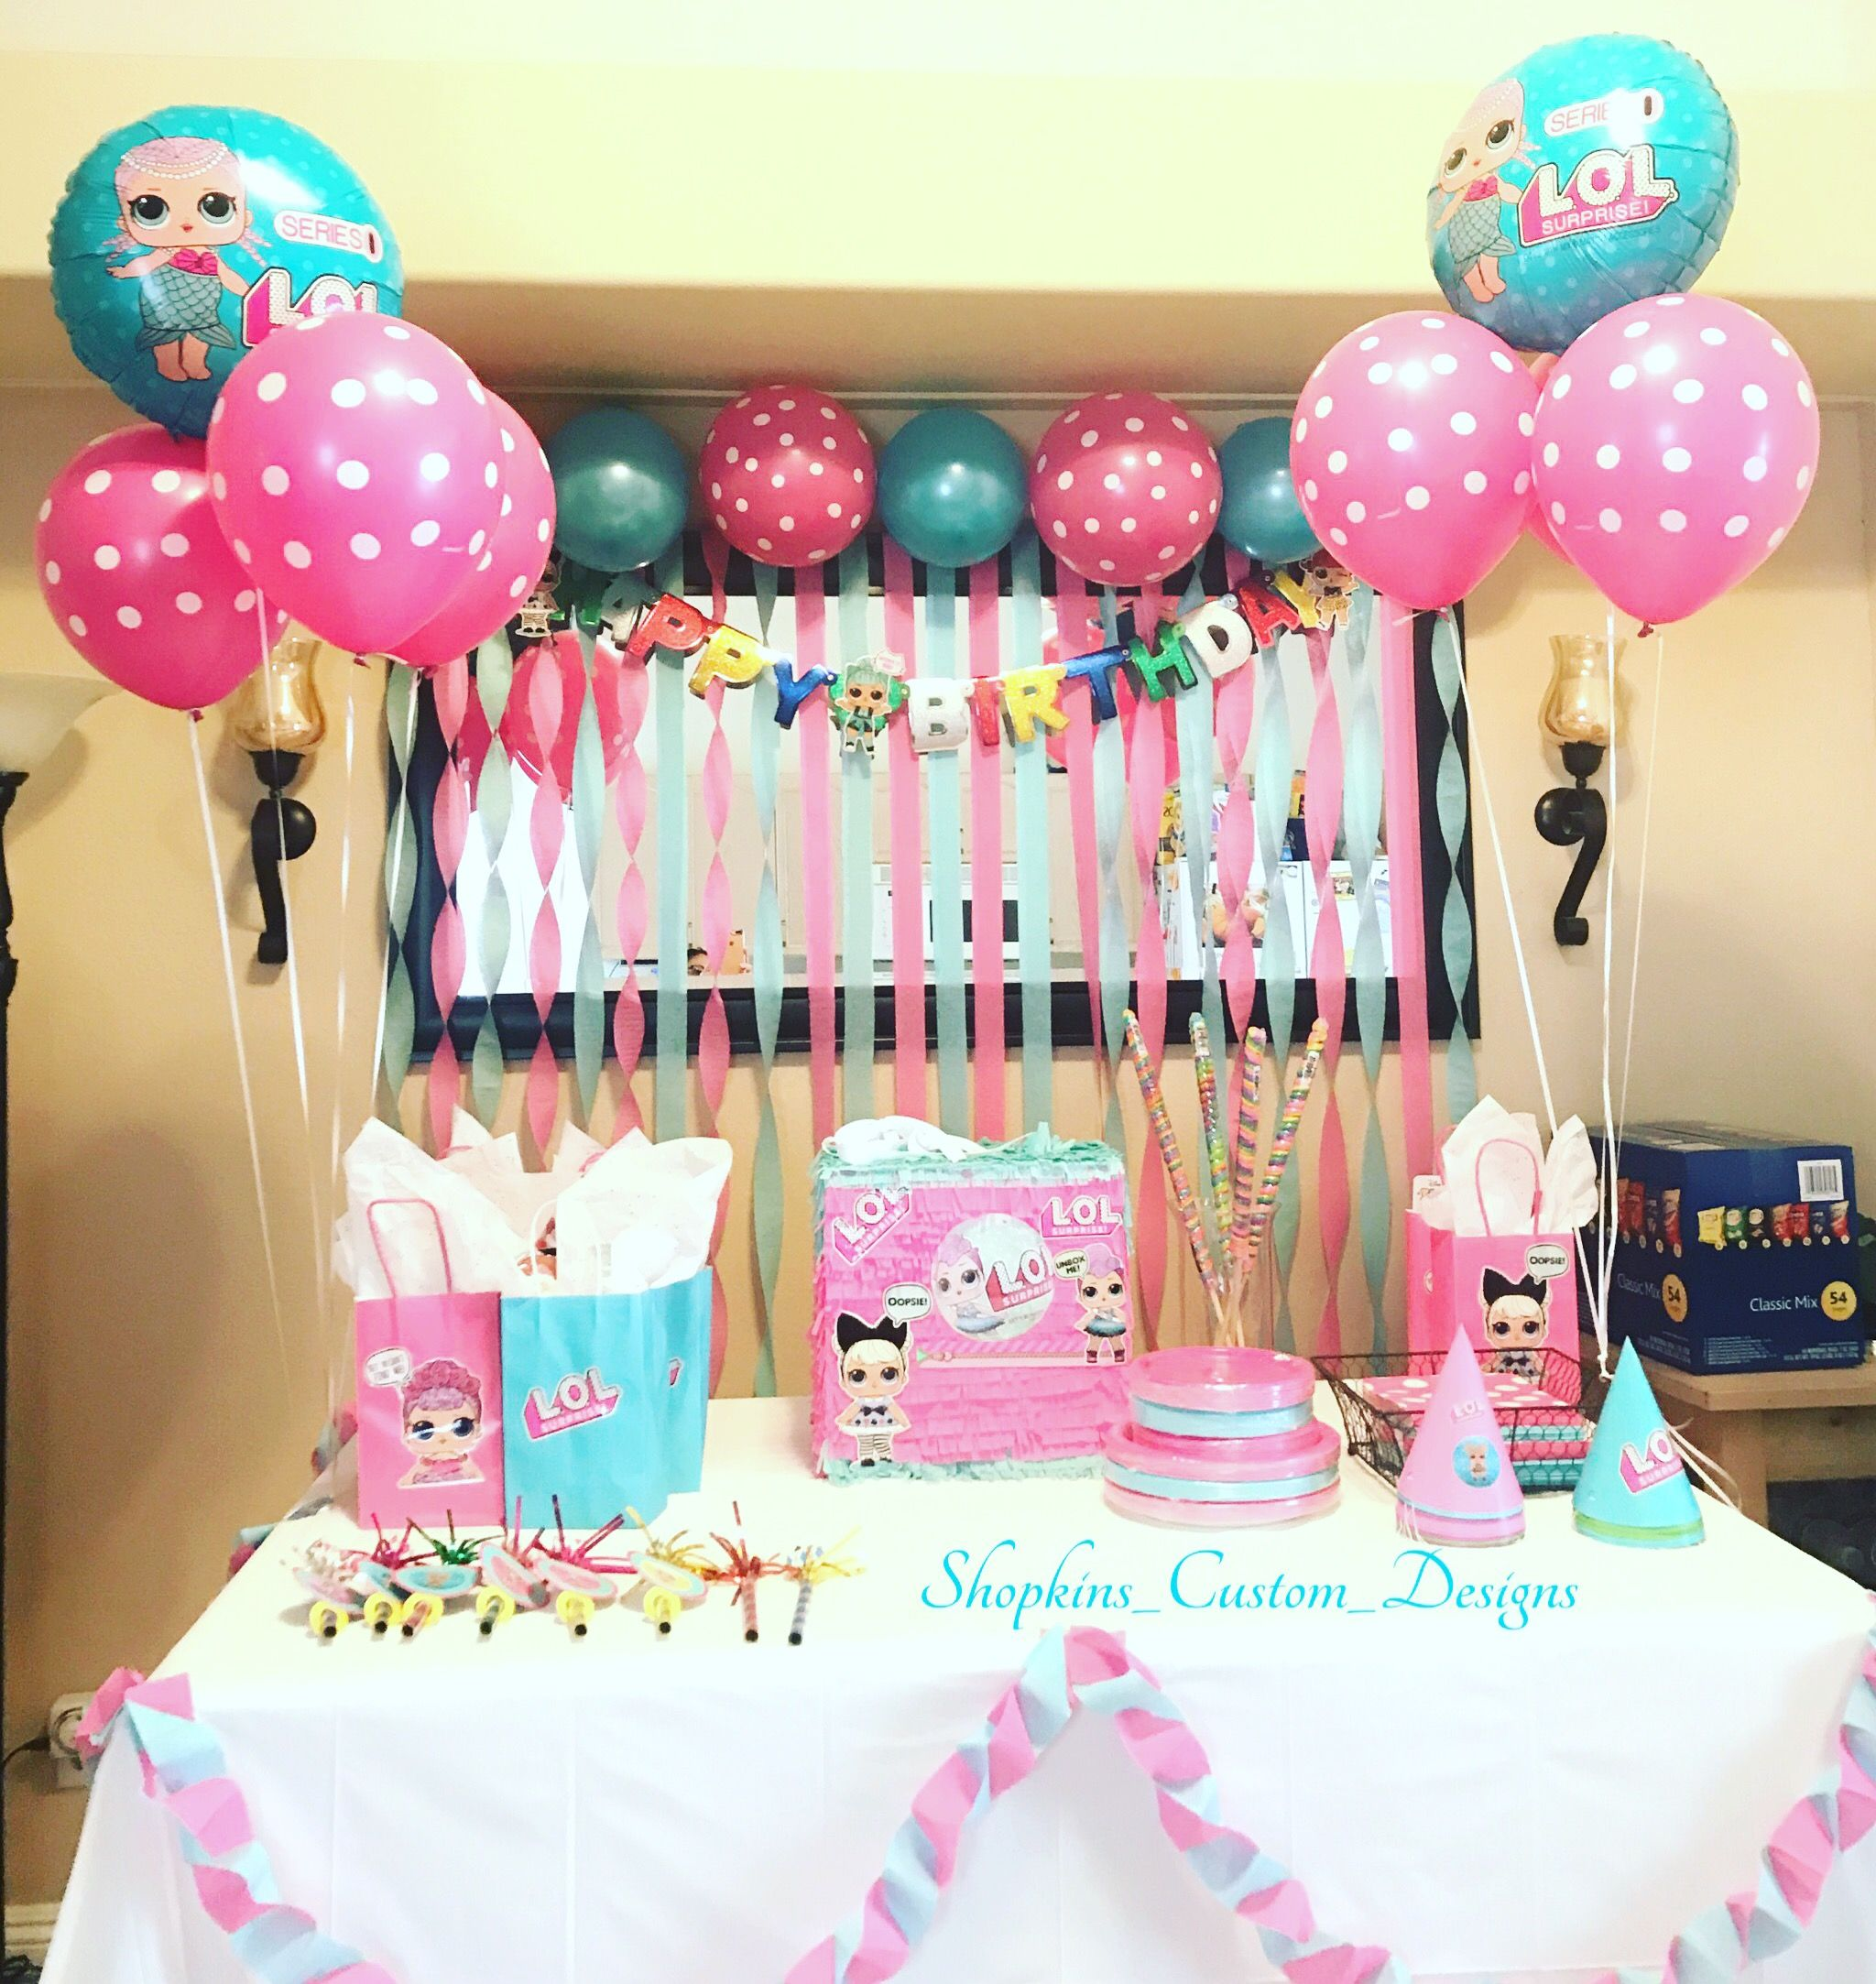 L.O.L Surprise Birthday Party